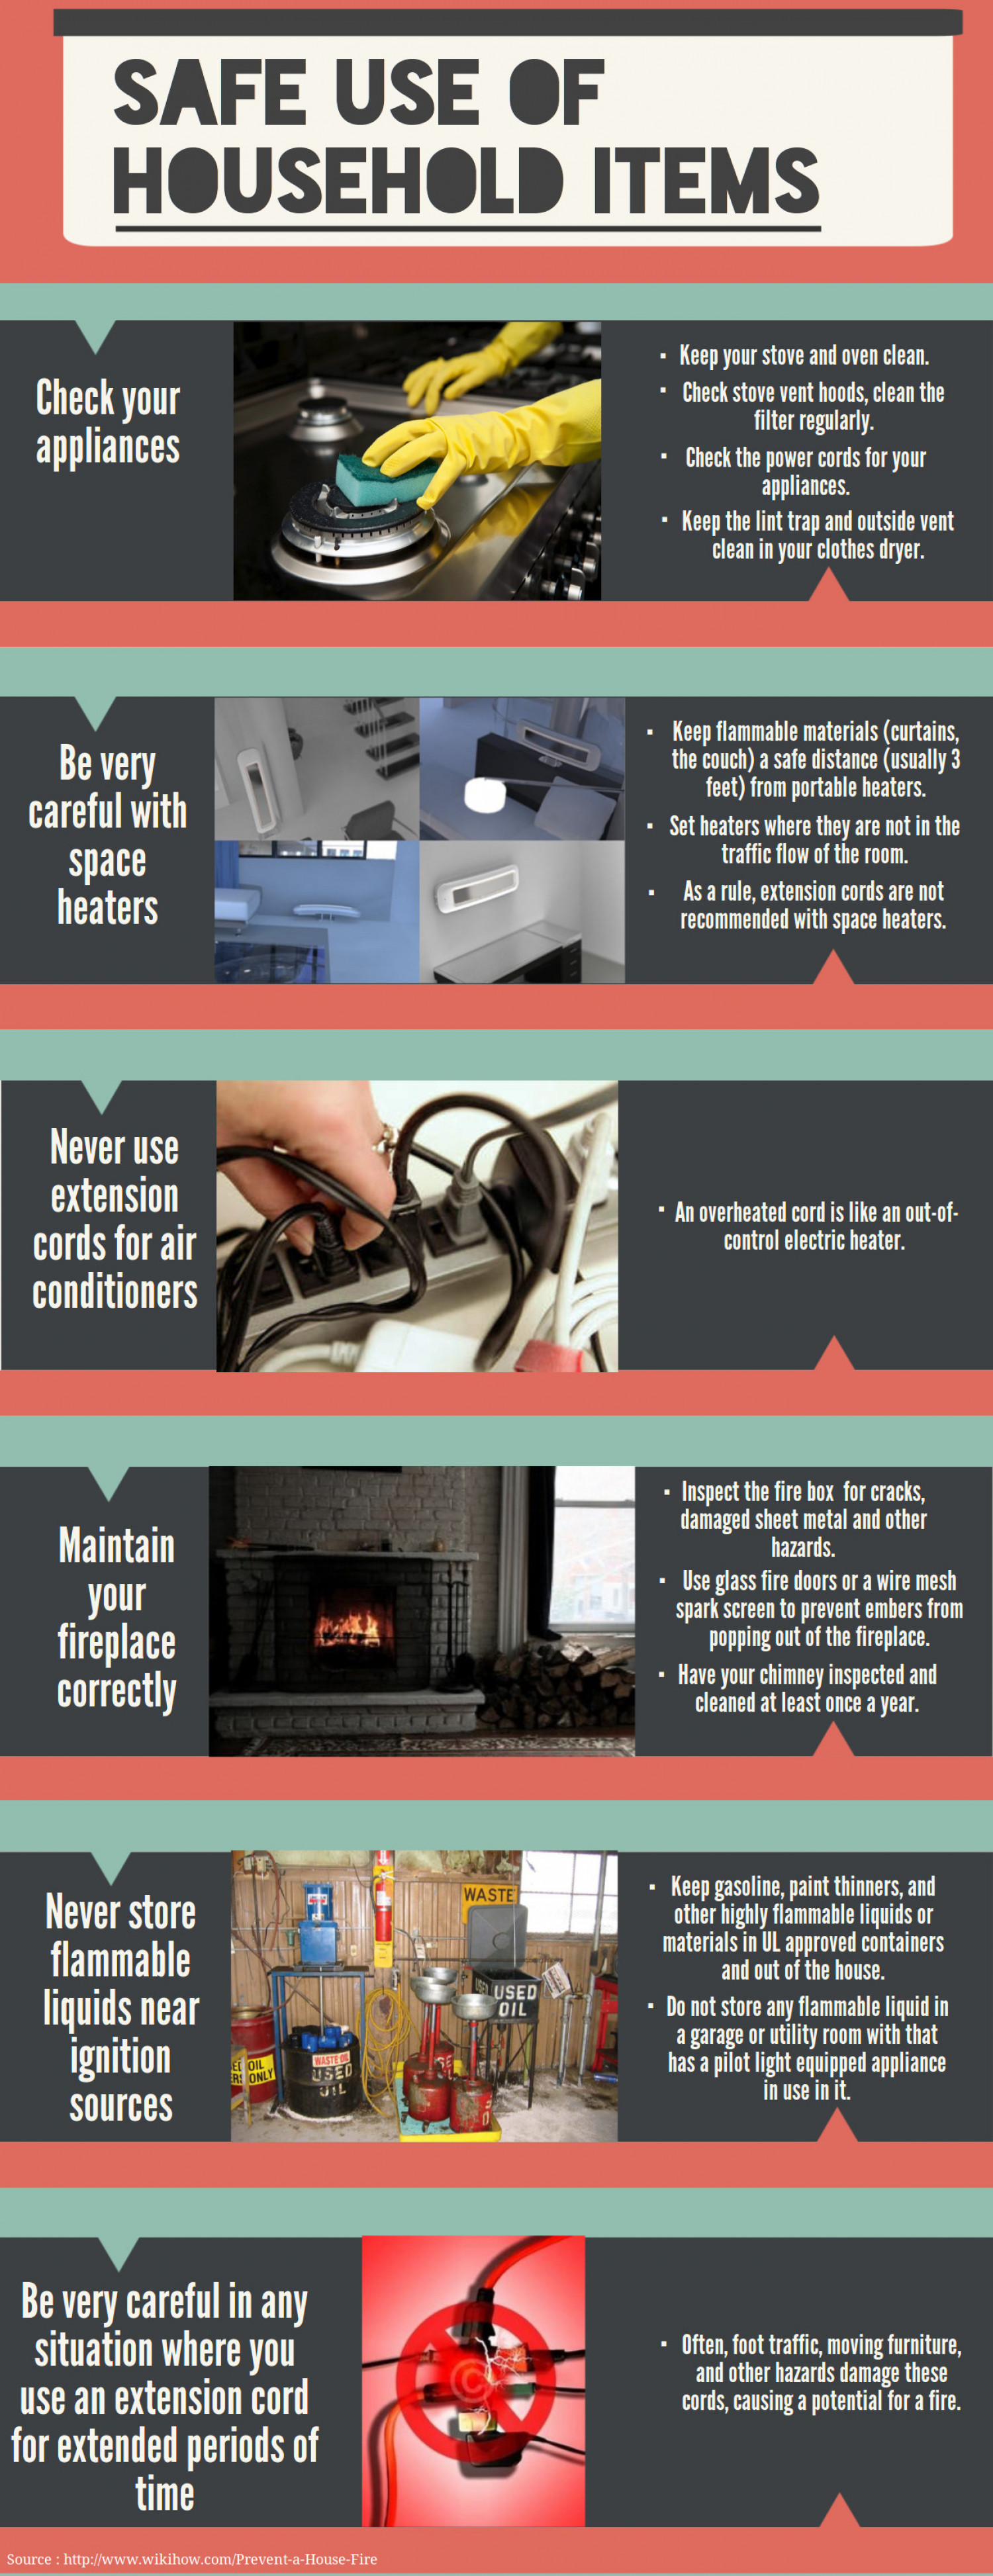 Safe Use Of HouseHold Items Infographic